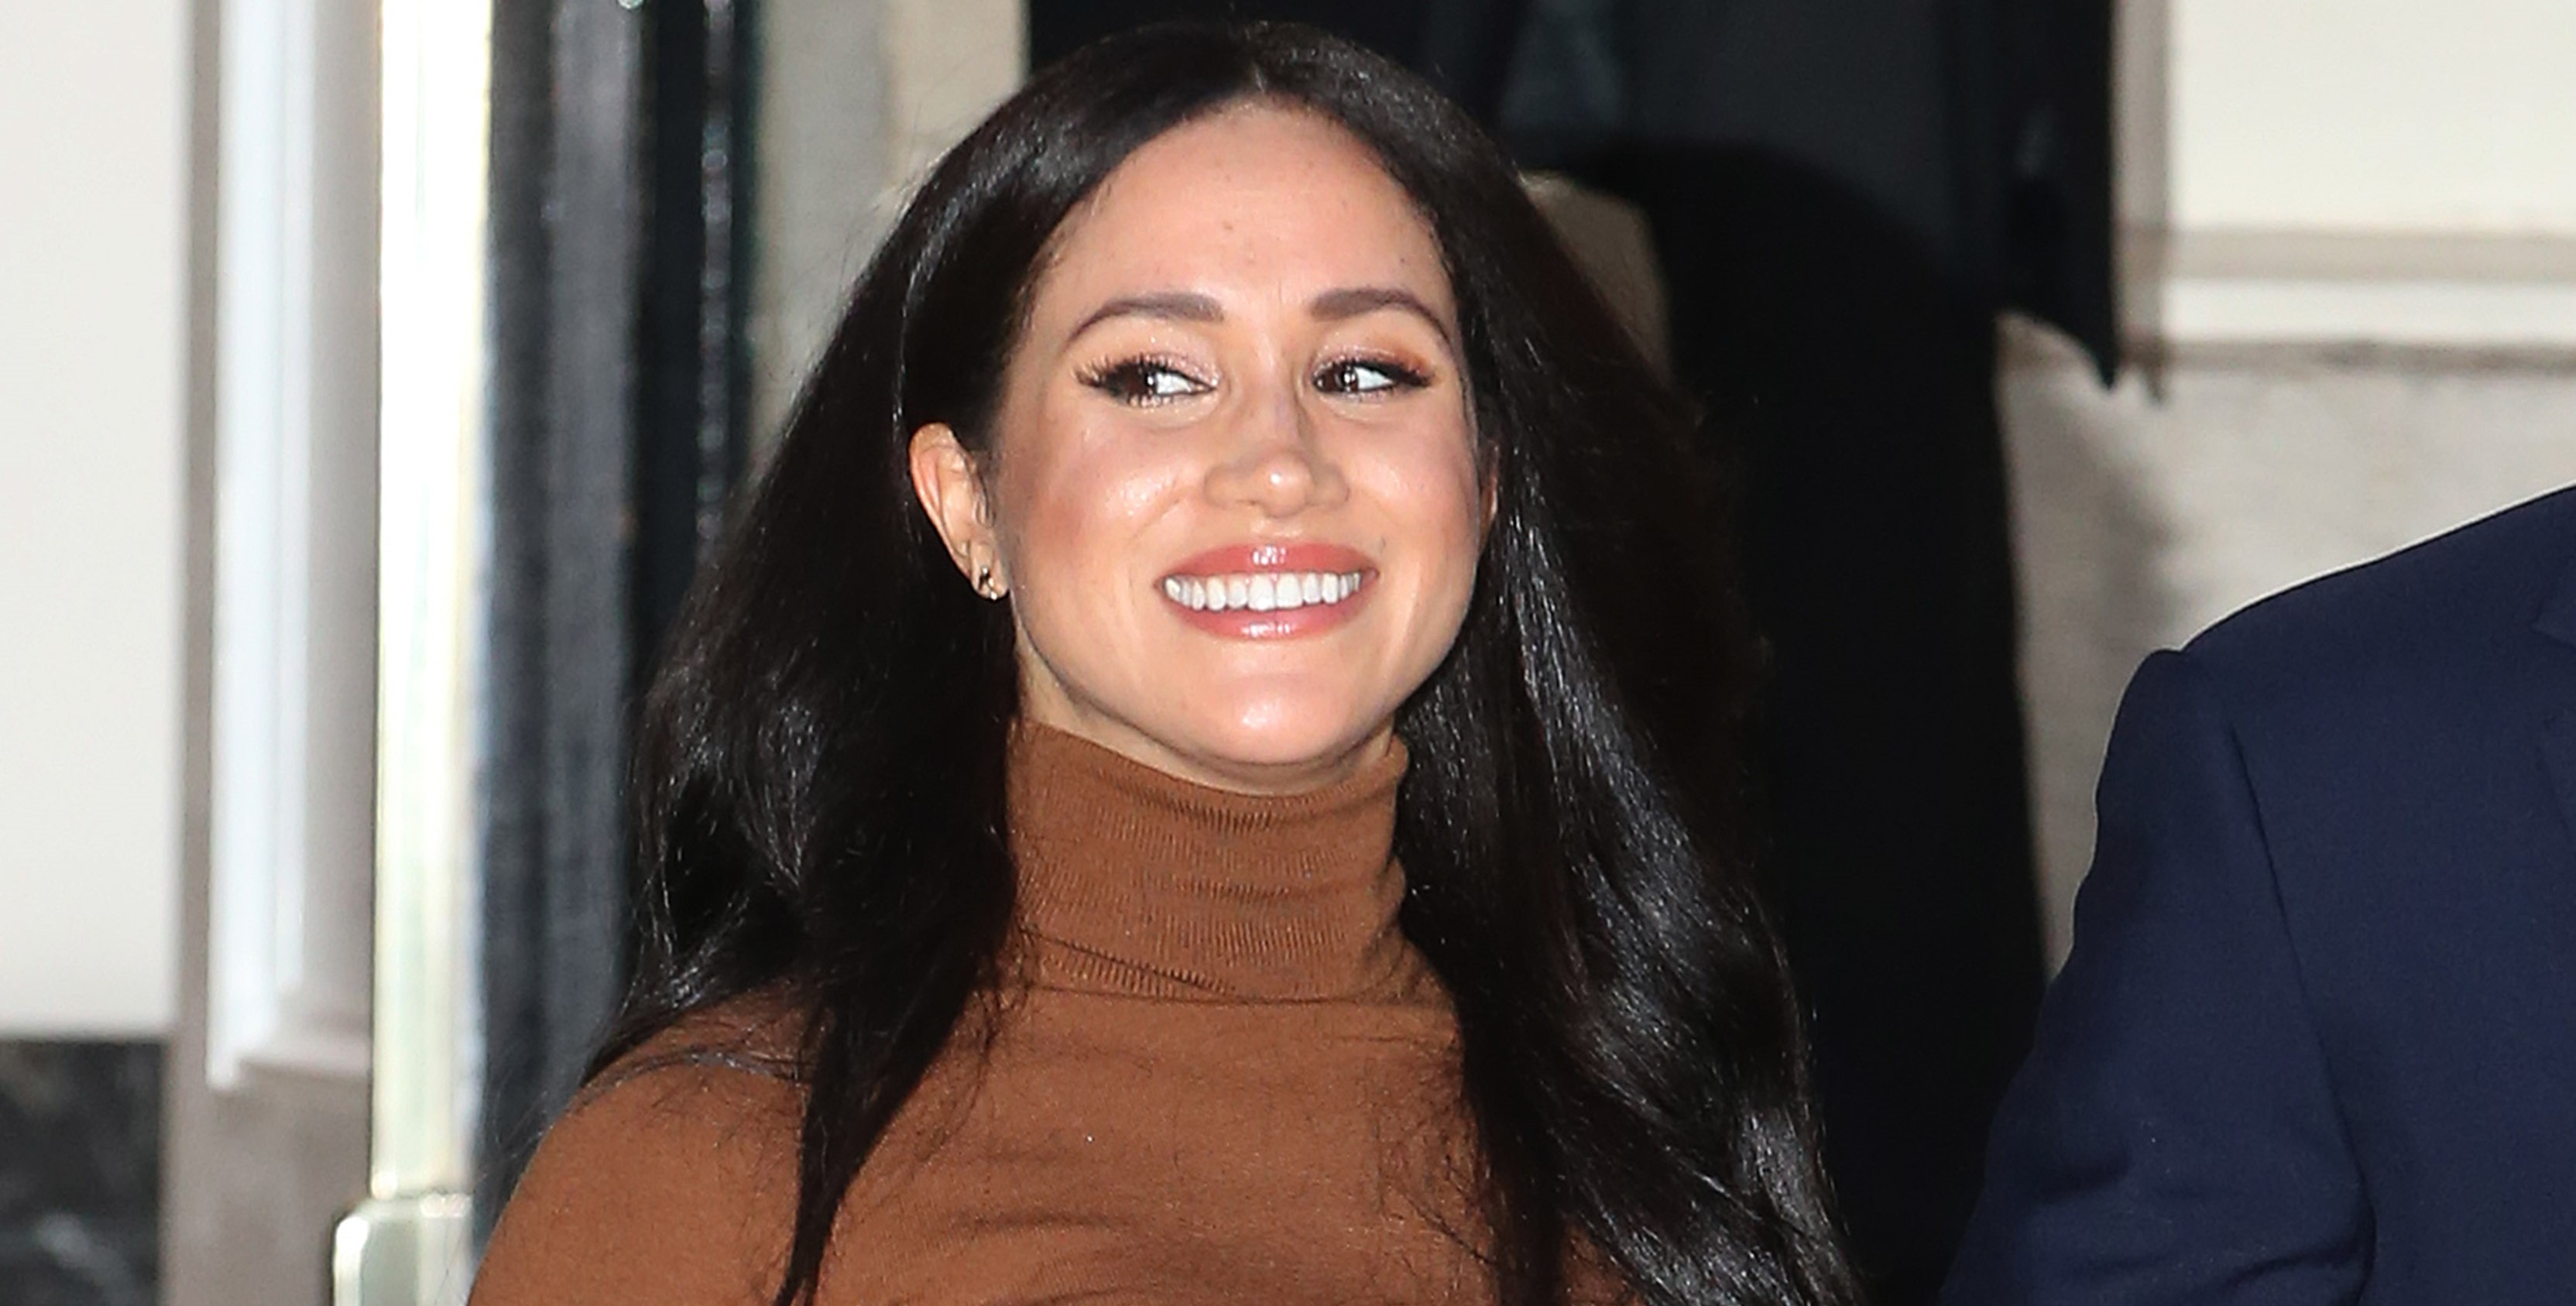 Palace 'denies Meghan has landed role in TV reality series' after splitting from royal family